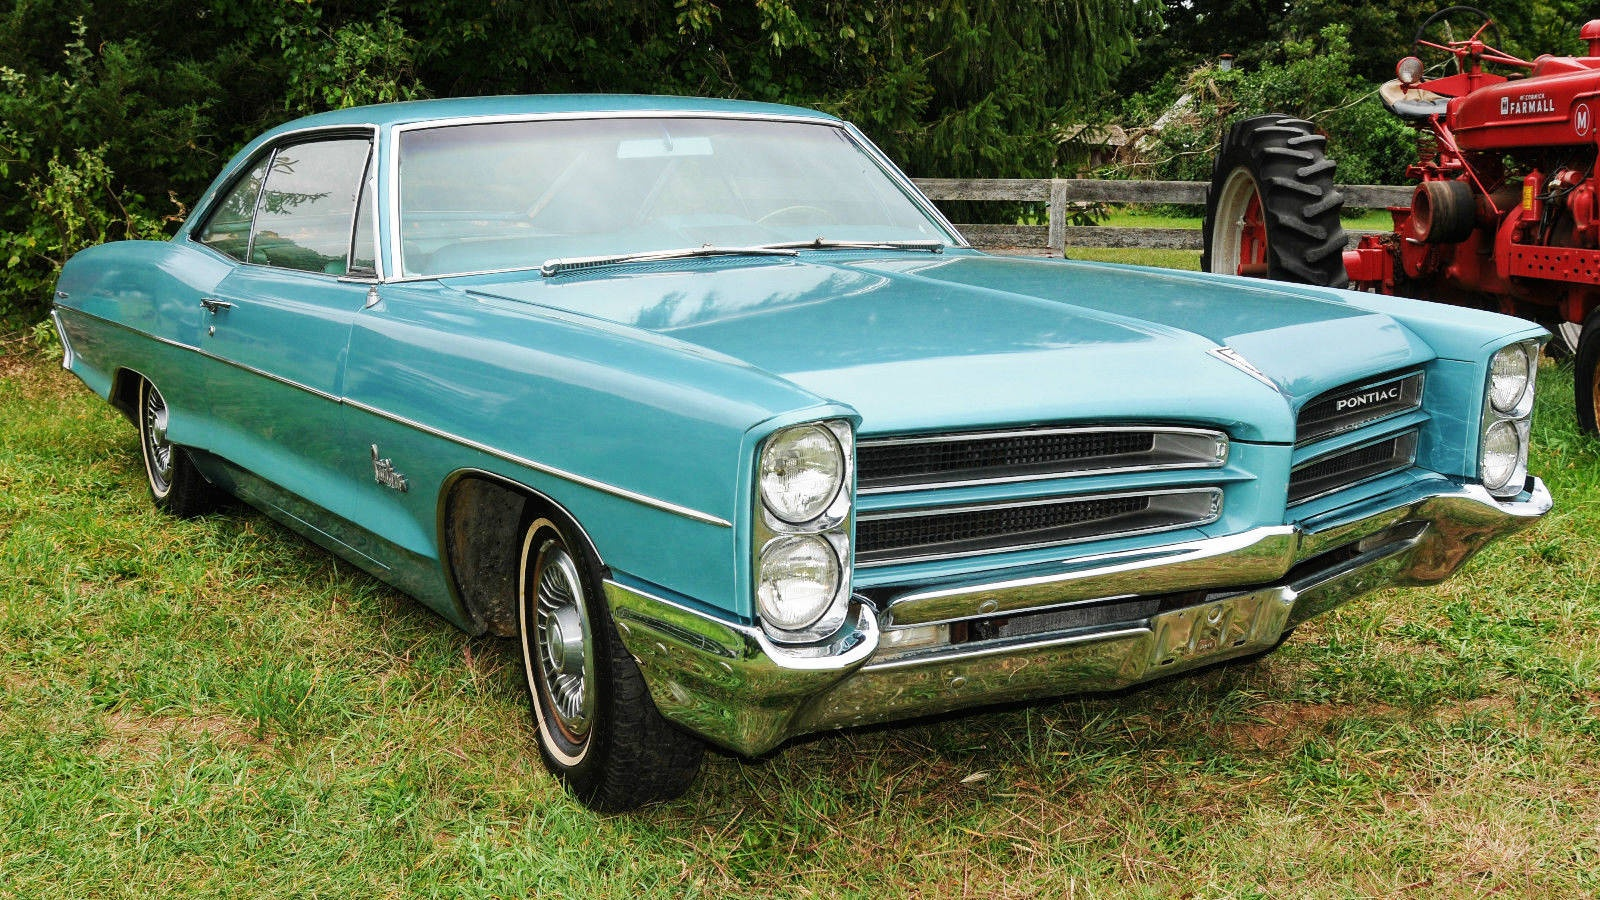 hight resolution of 66 bonneville 4 door